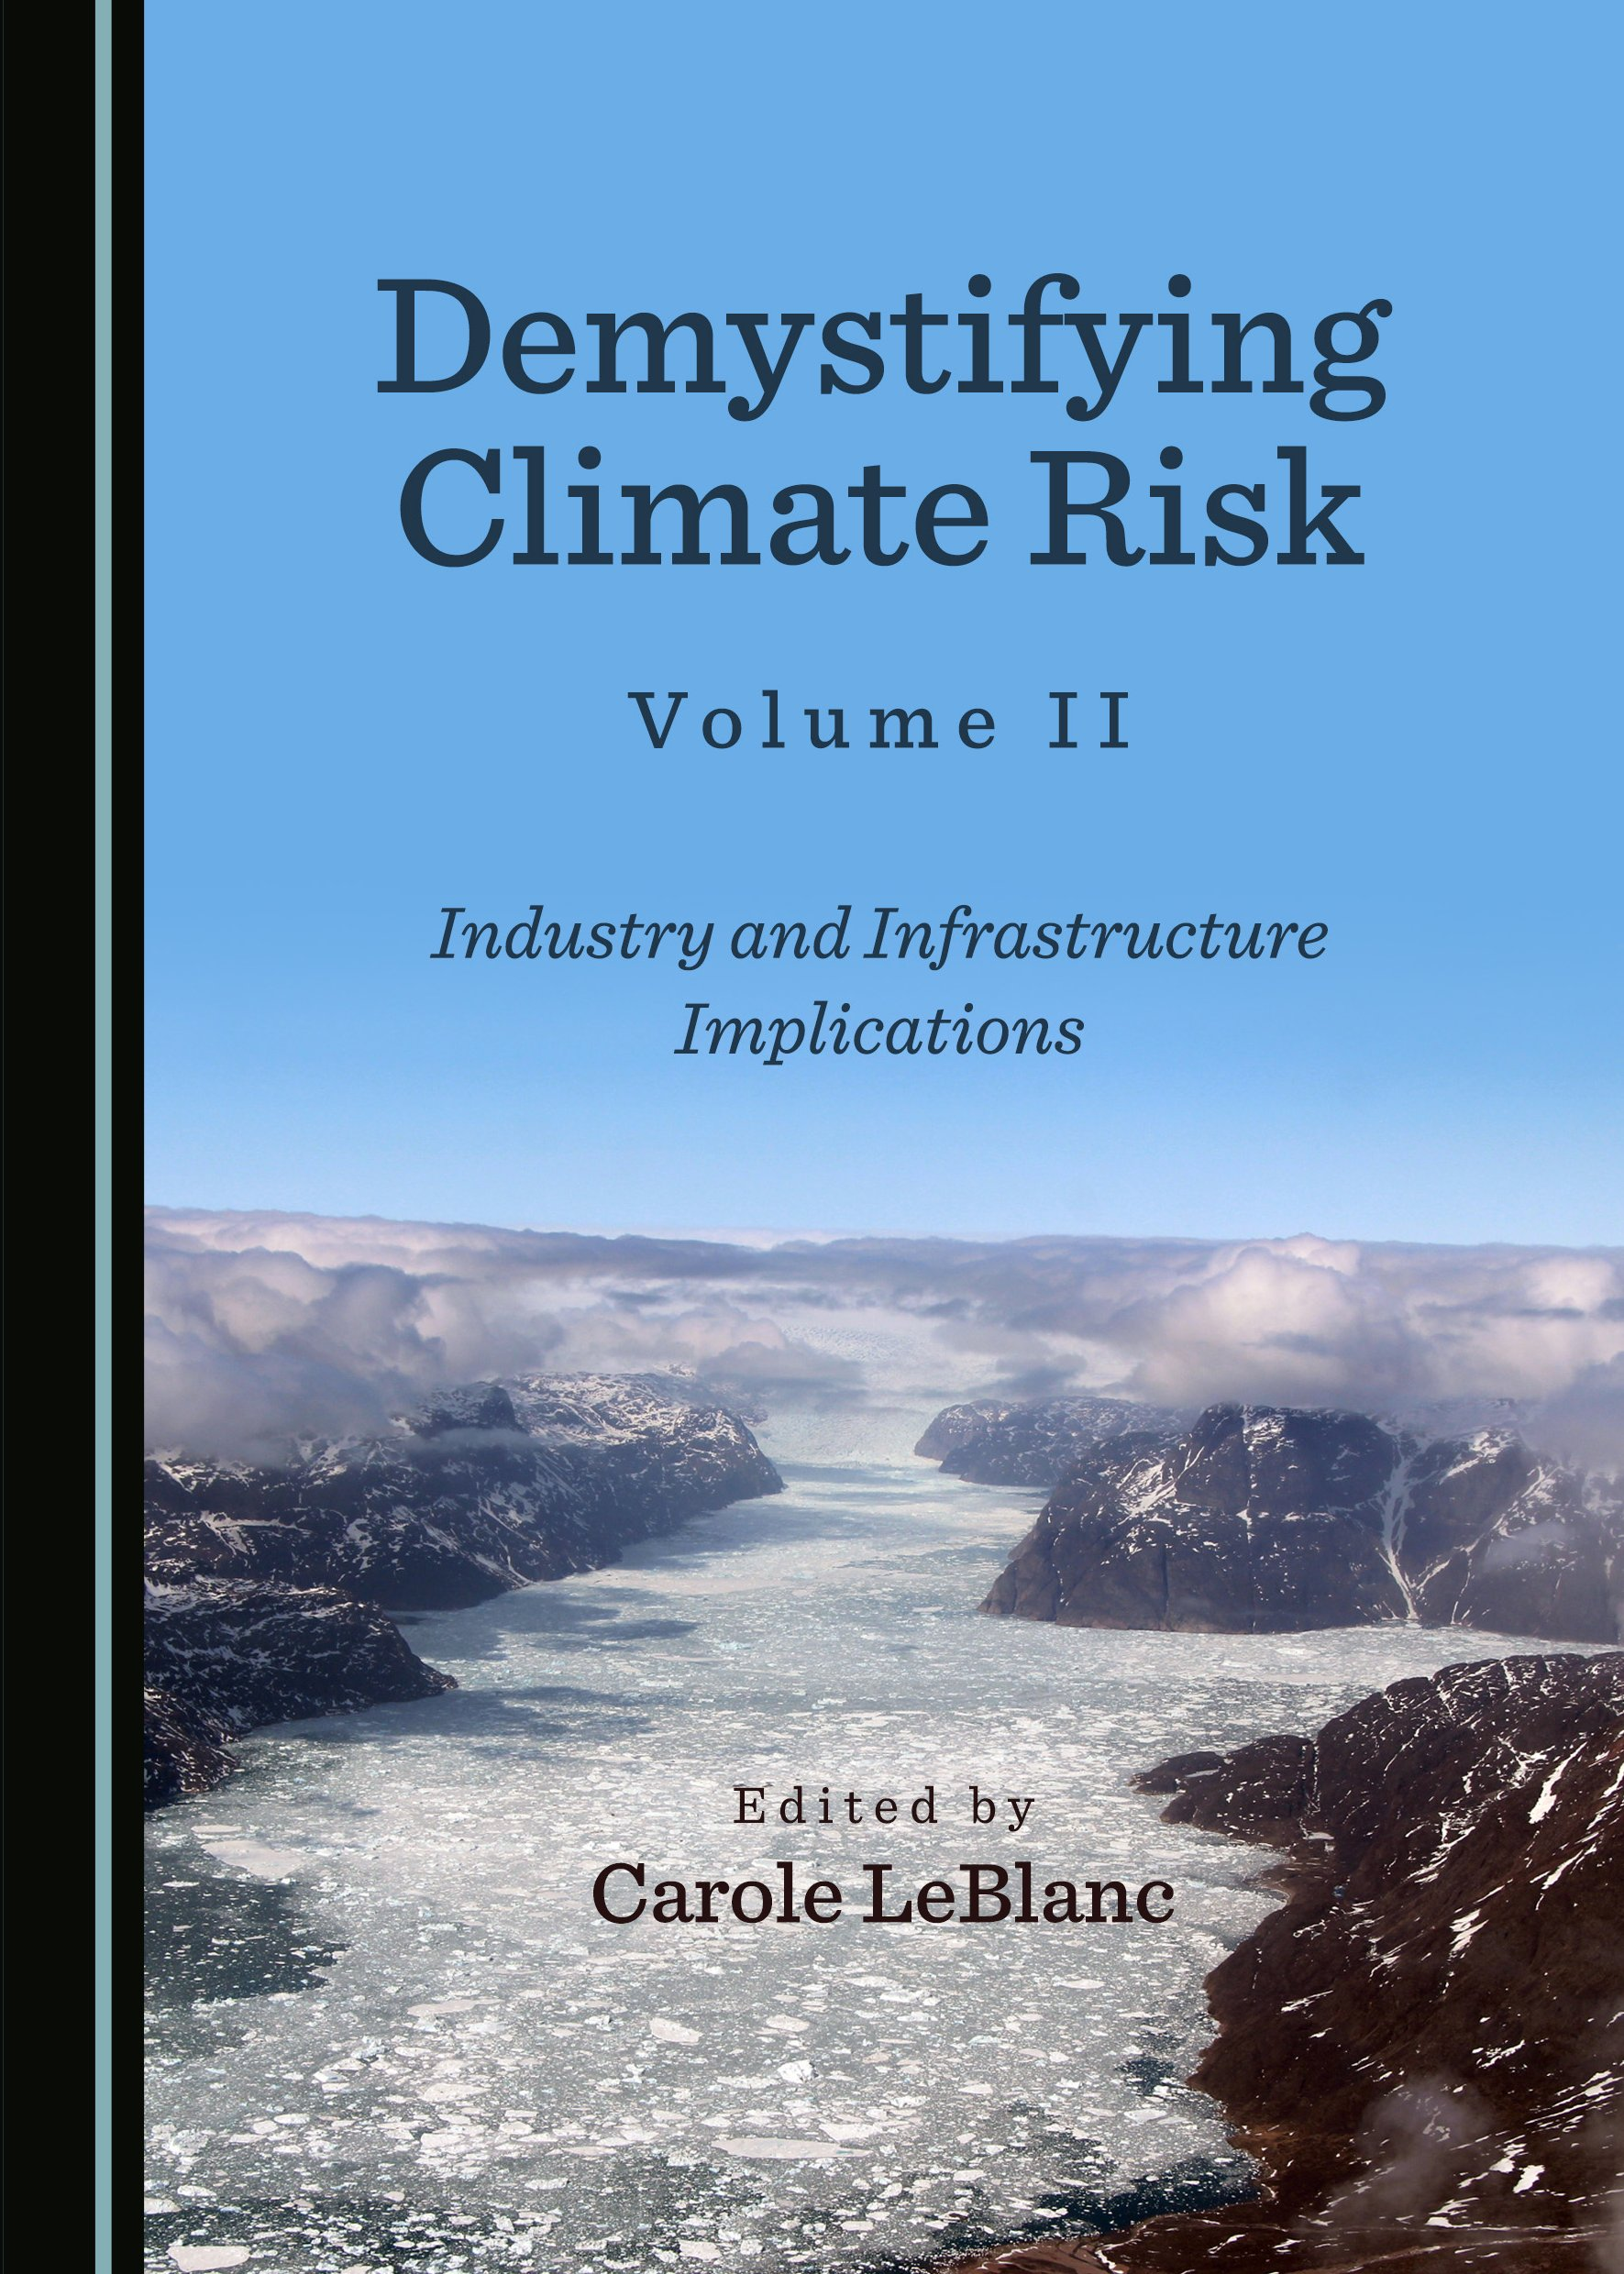 Demystifying Climate Risk Volume II: Industry and Infrastructure Implications